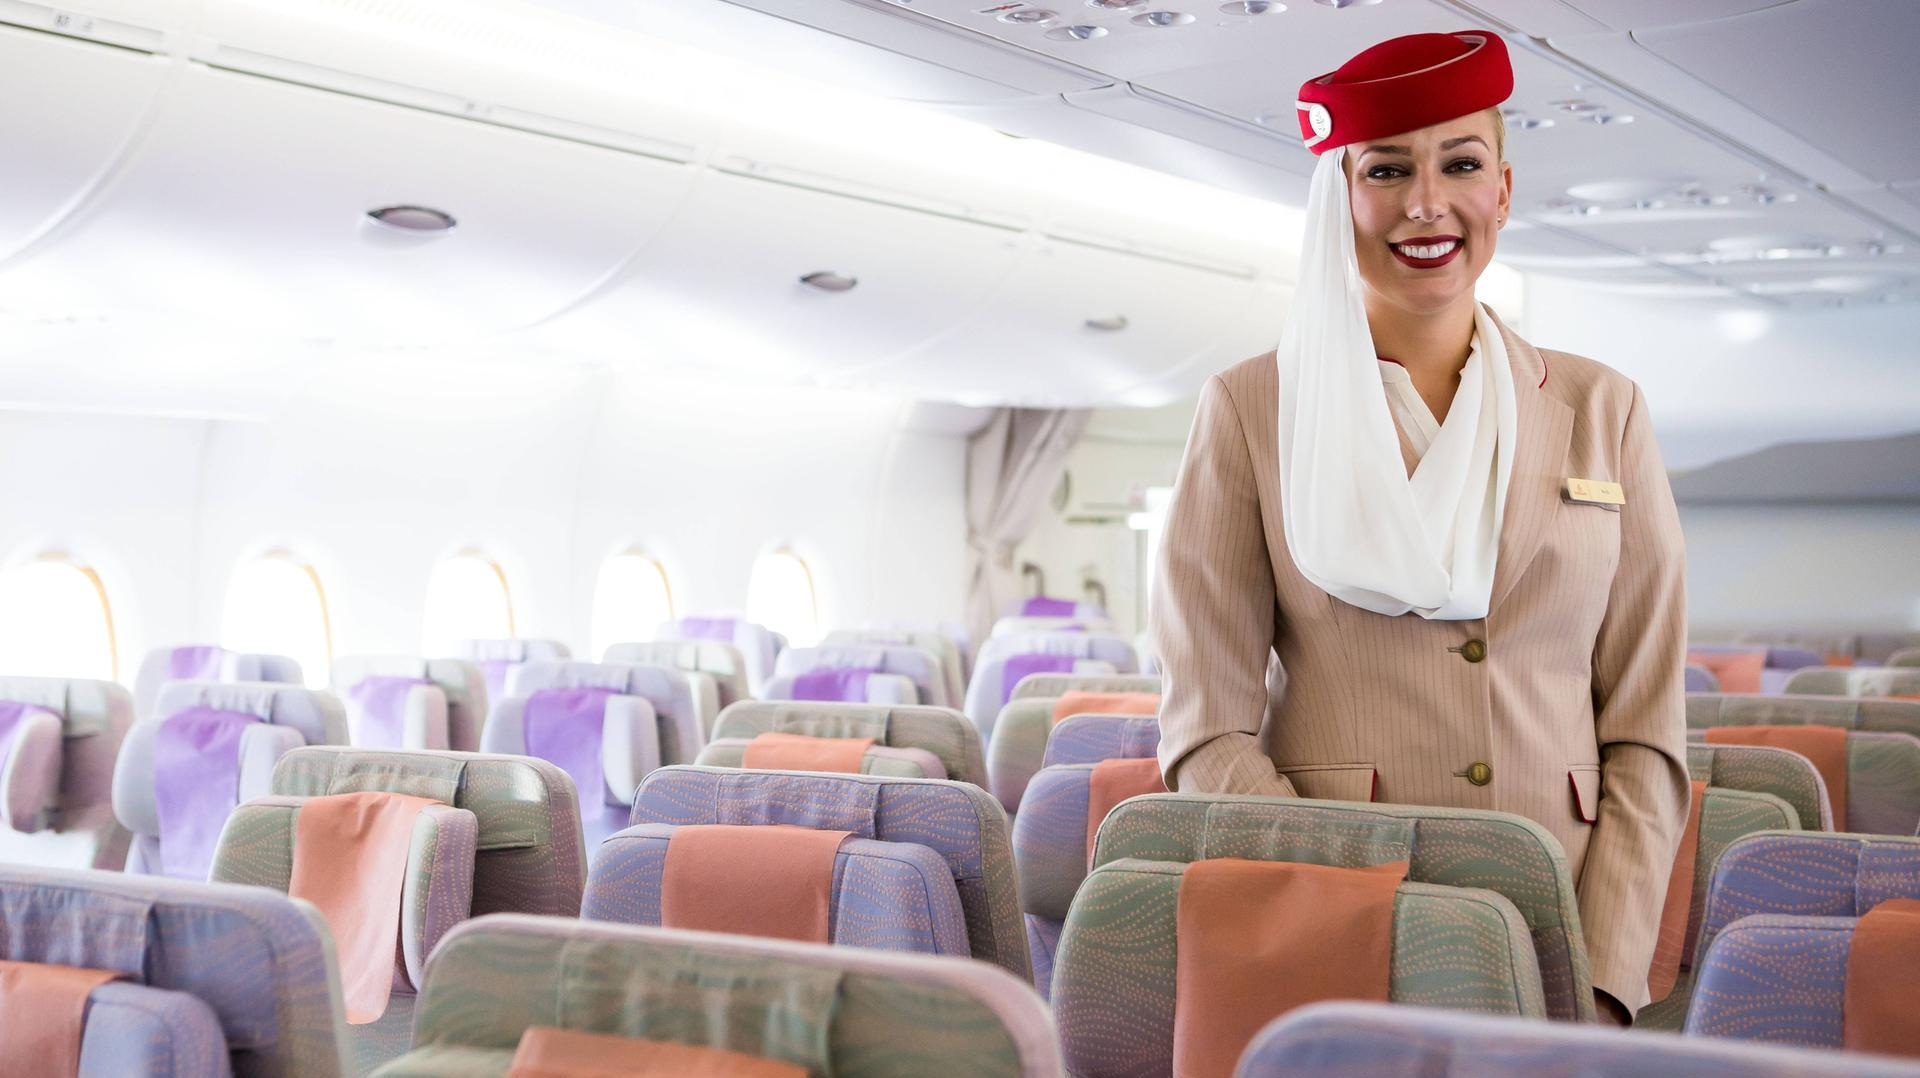 a case study of emirates airline Emirates - business model case study 1 hello tomorrow harshit jhawar 130301410 77 mba-it div b 2 with over 130 destinations, emirates is the only airline to offer non-stop service to all six continents from a single hub.